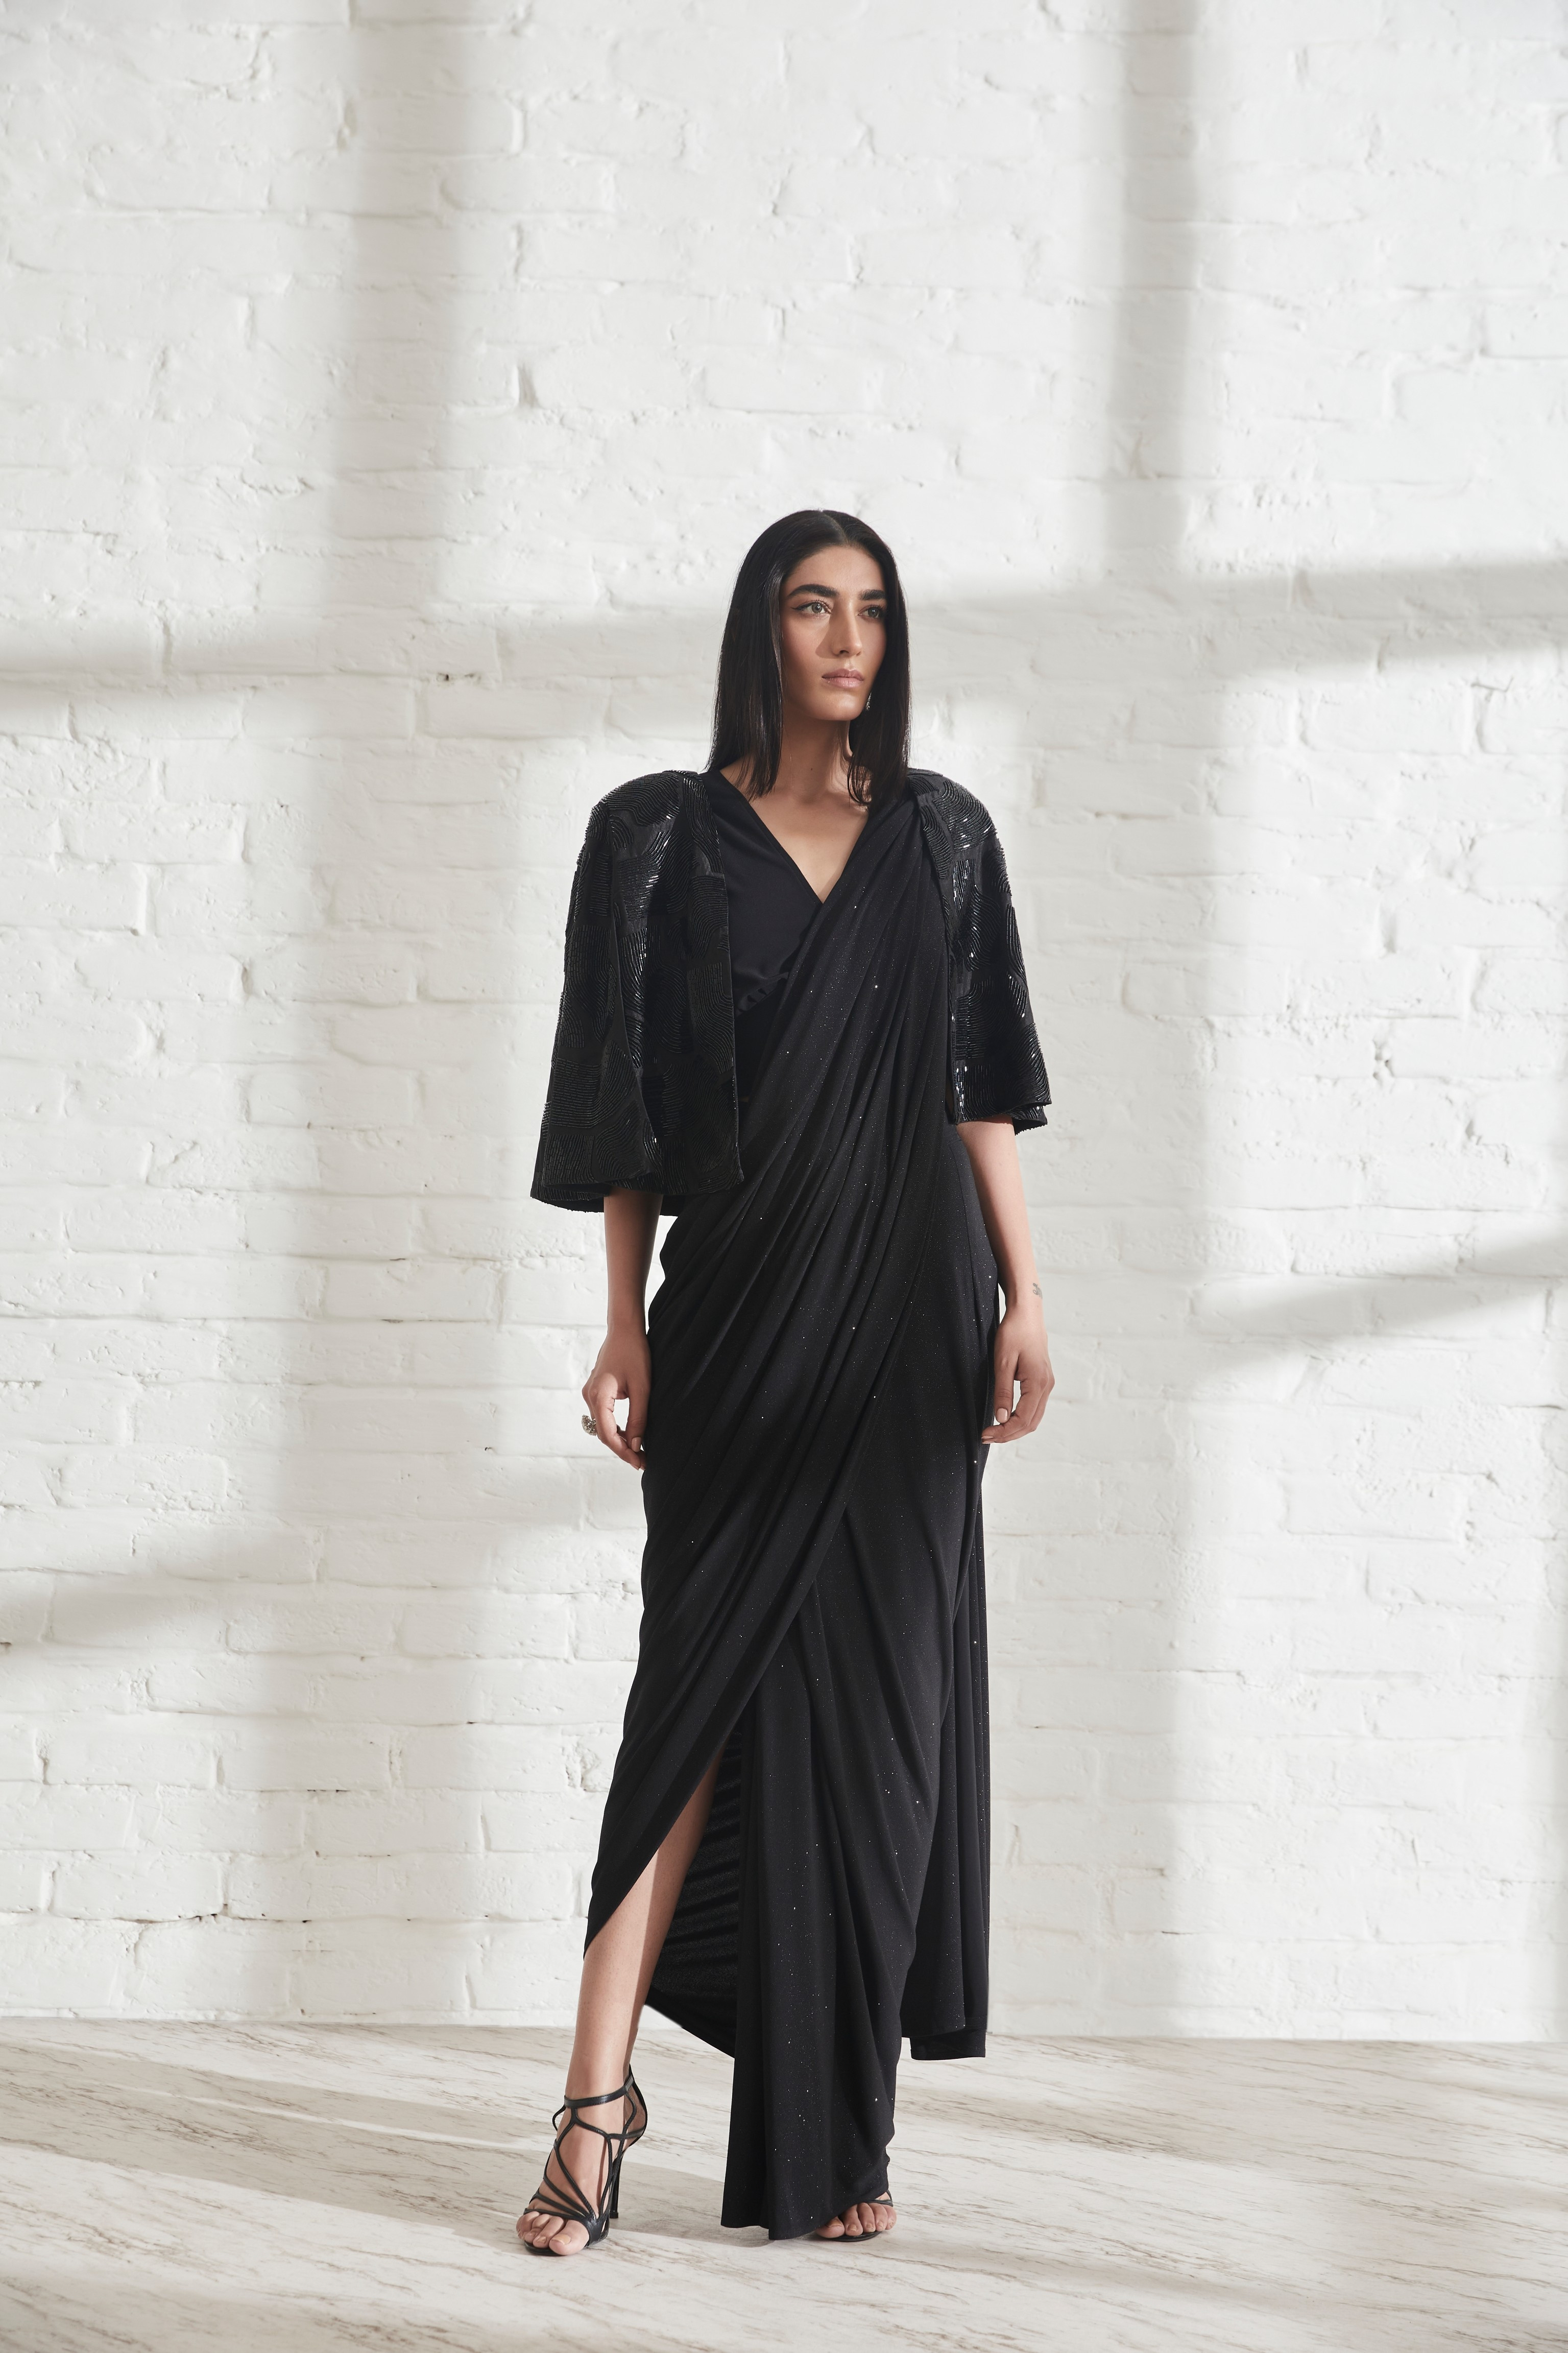 Star Jersey Sari with Muscle Tee and Wave Cape